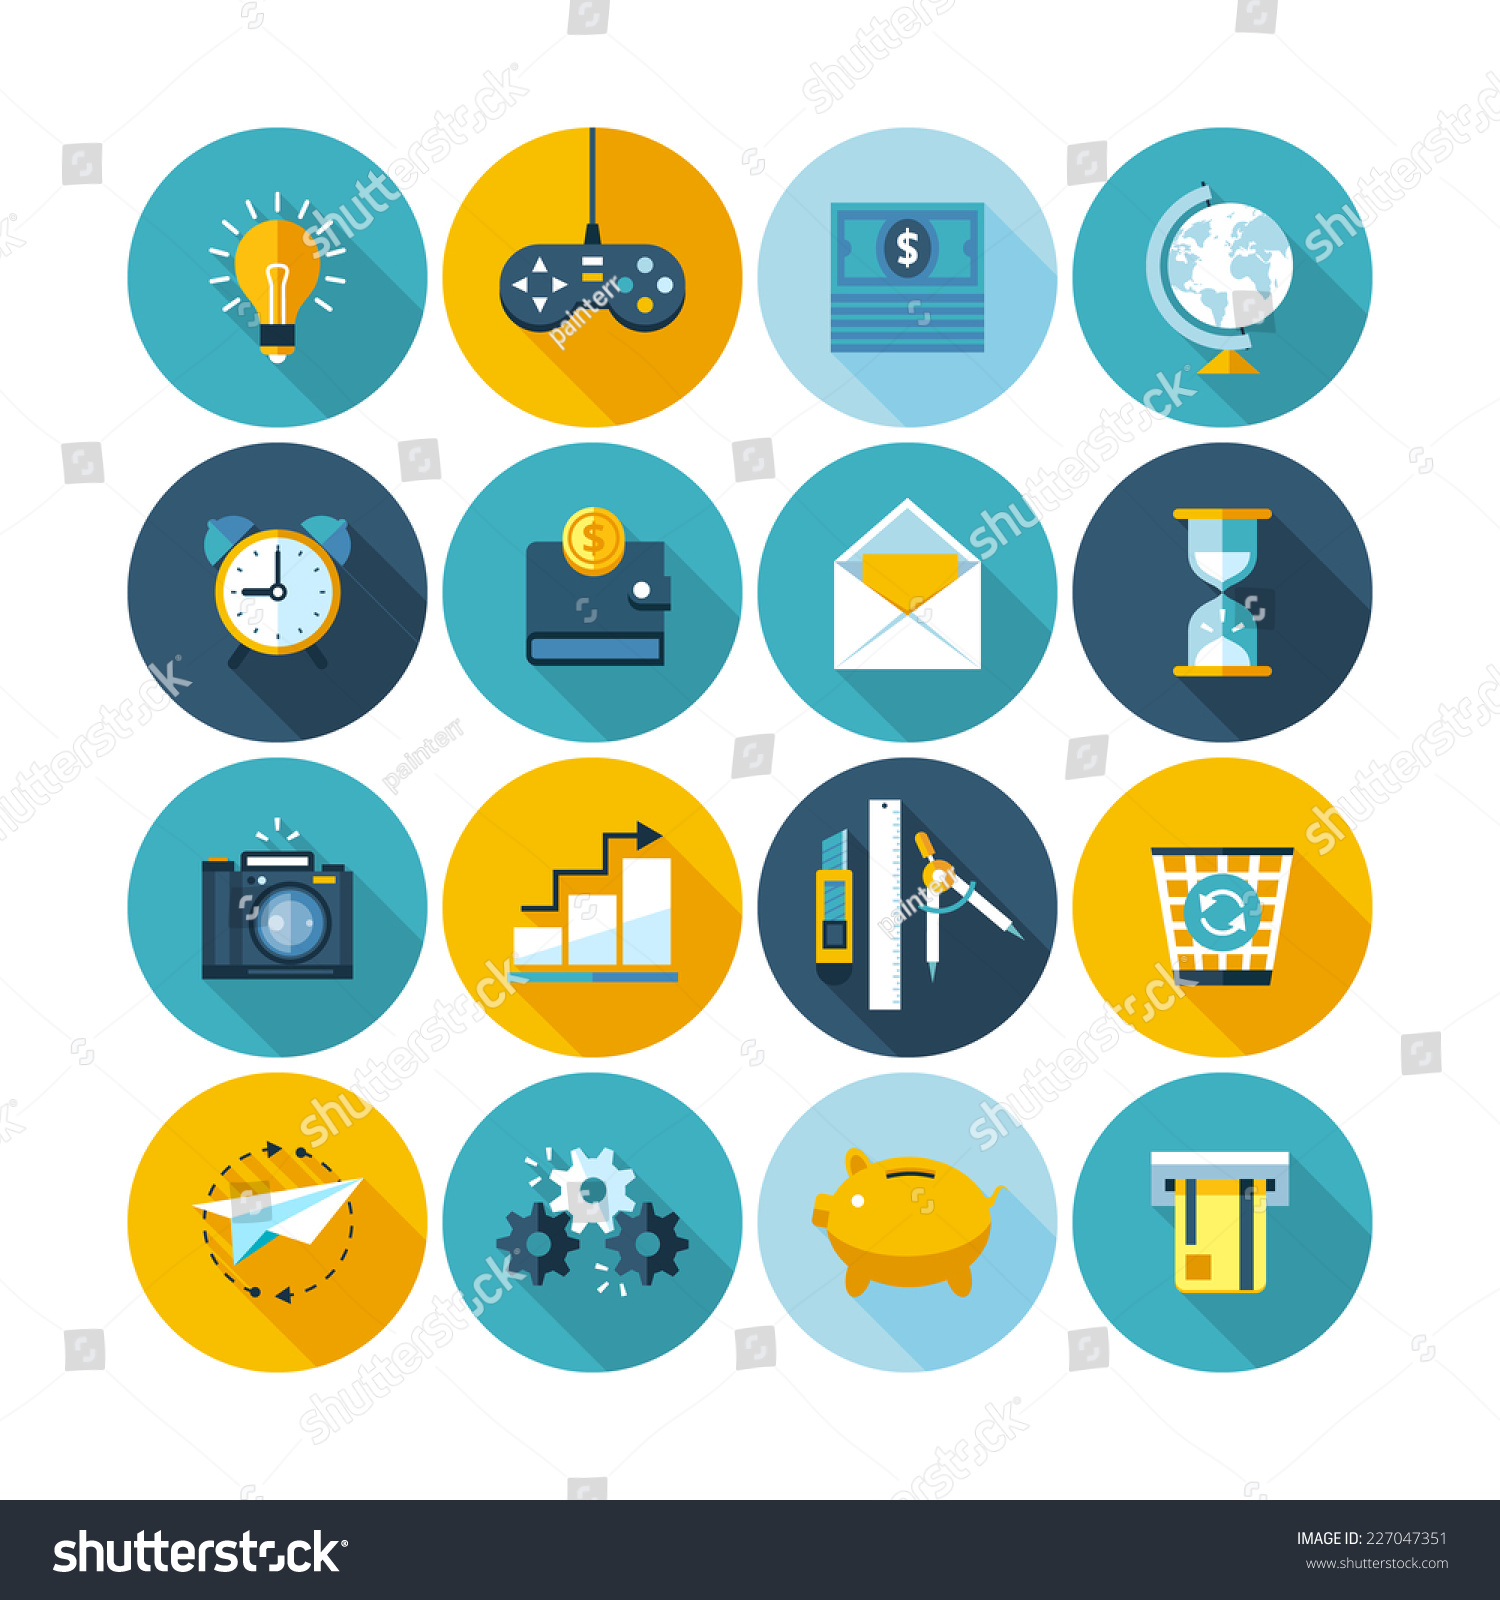 Modern colors web design - Modern Flat Circle Icons Vector Collection With Long Shadow Effect In Stylish Colors Of Web Design